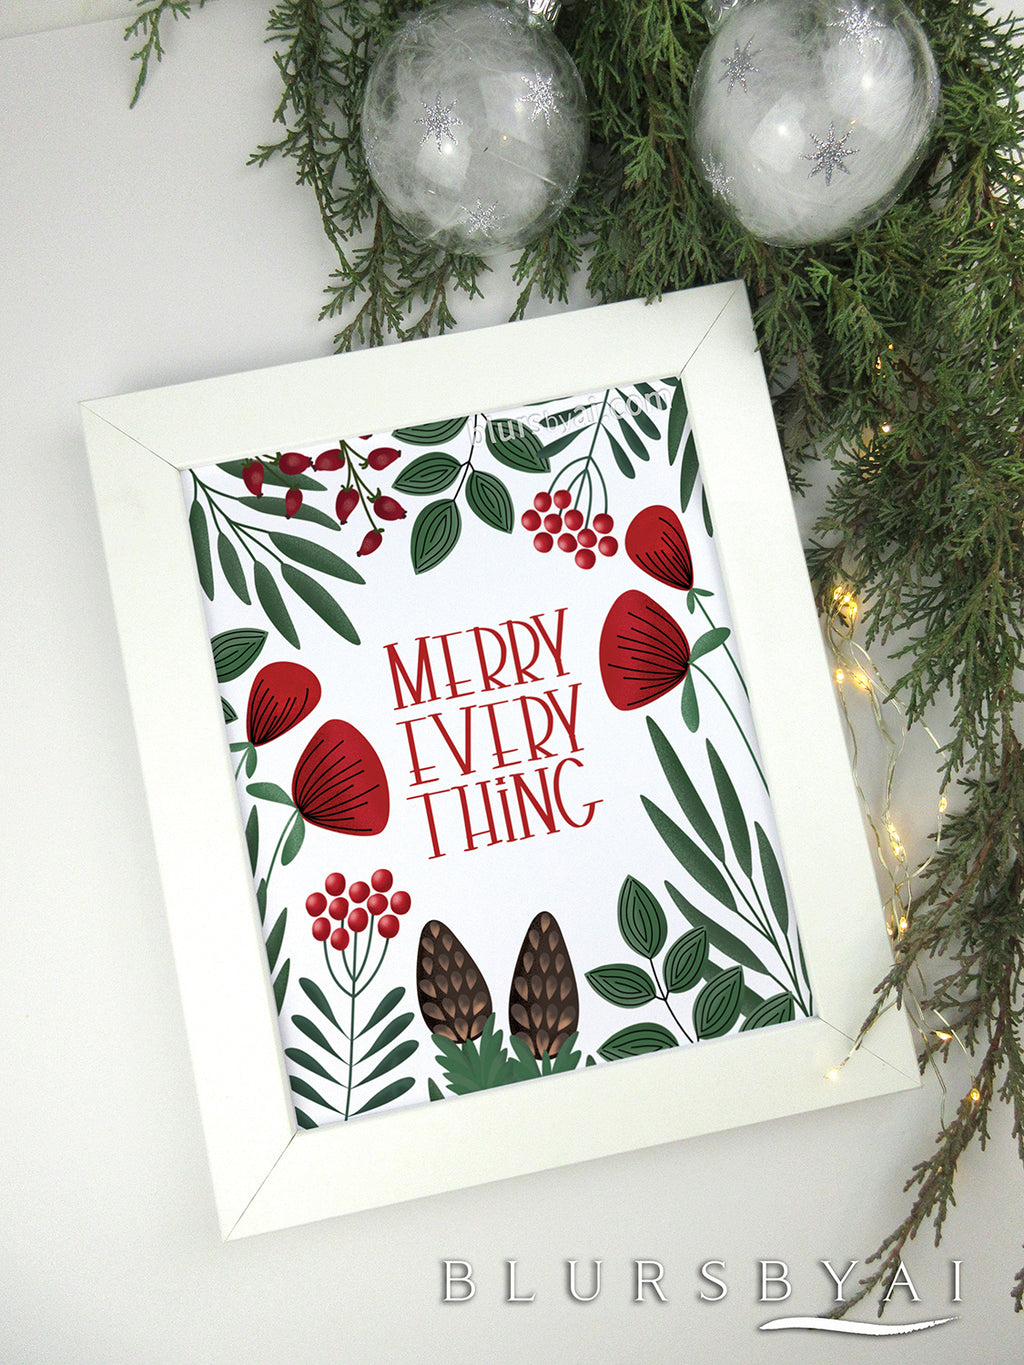 Printable holiday decoration: Merry everything in scandinavian style - Personal use